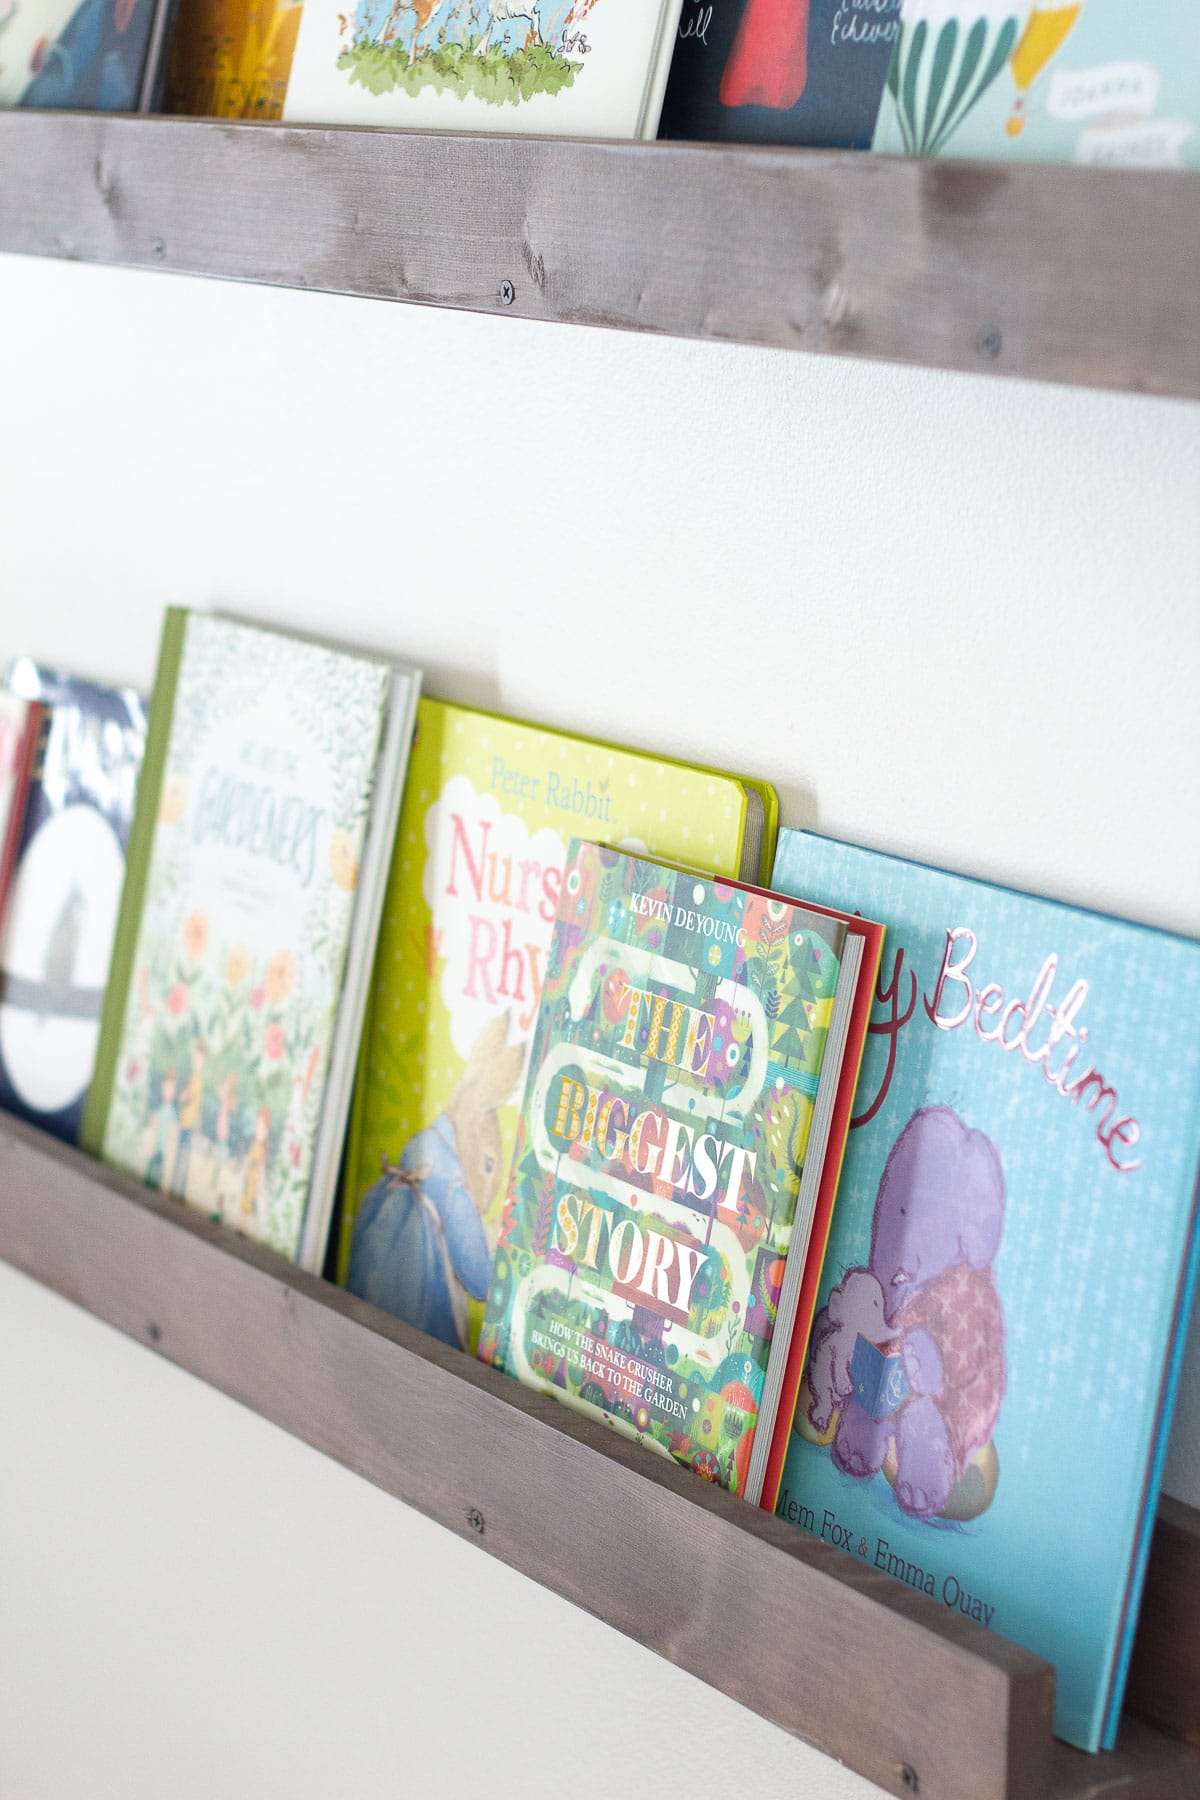 The Biggest Story and other children's books displayed on floating wall shelves.